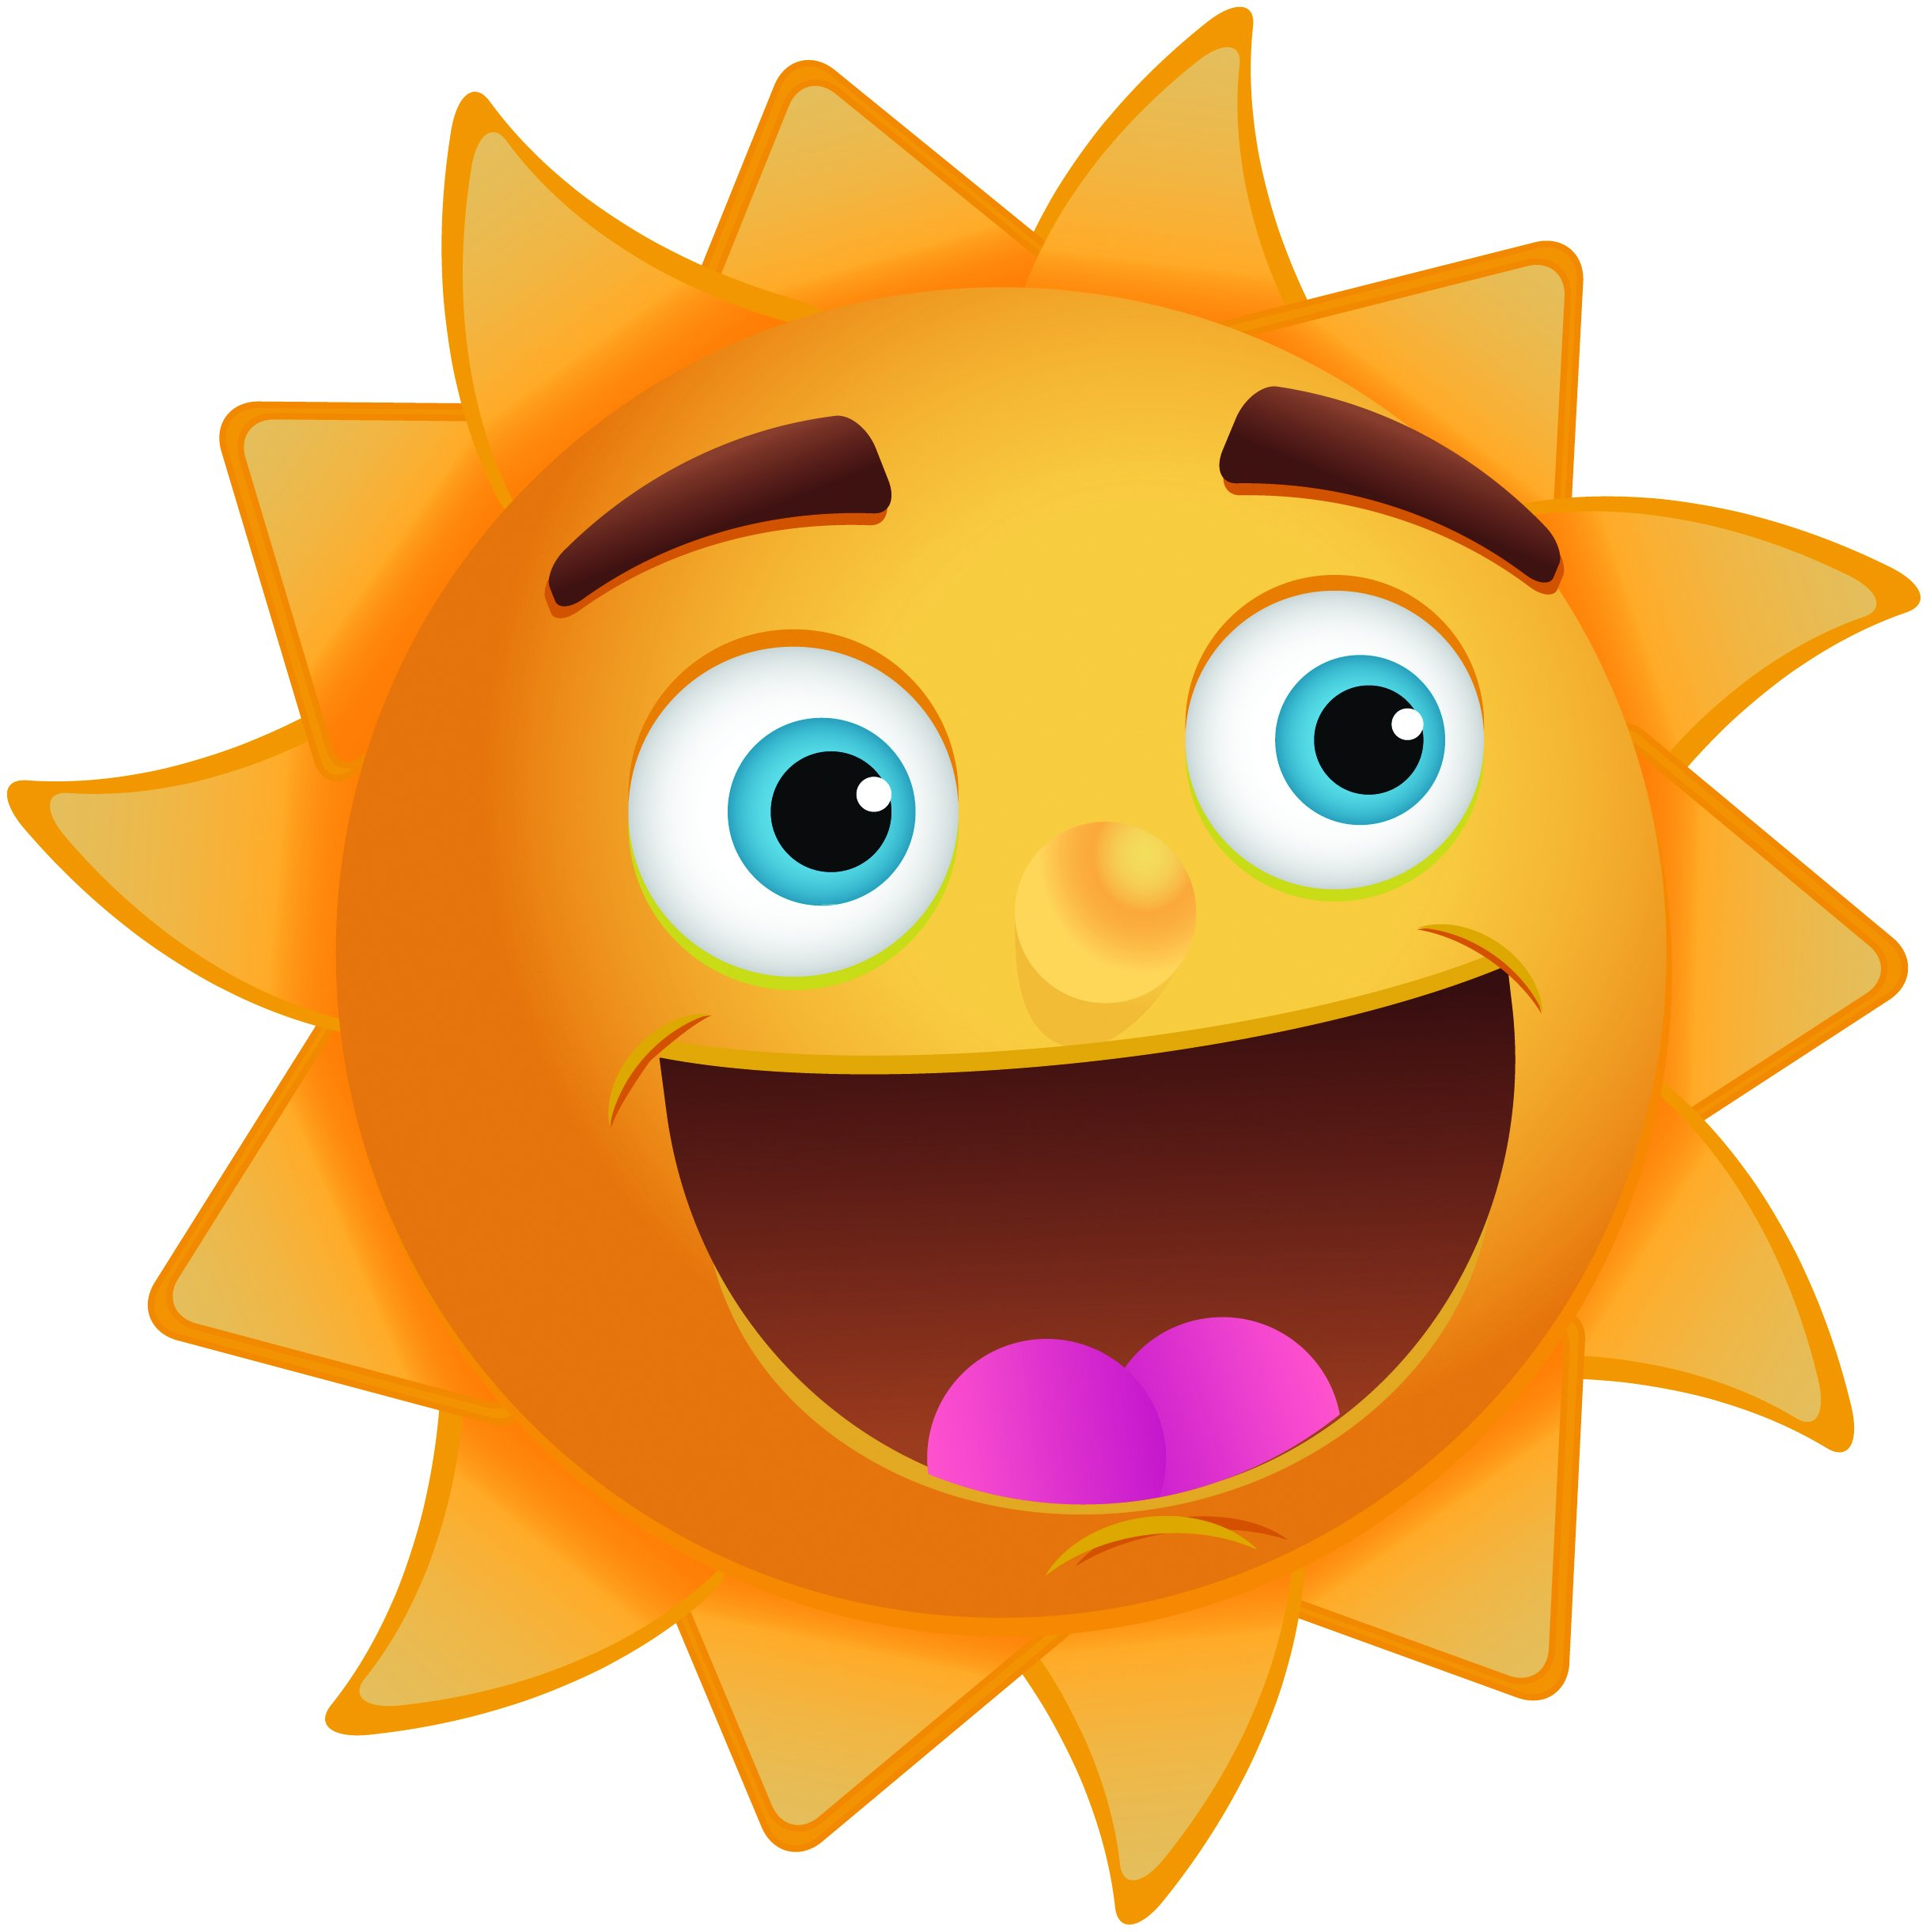 Happy Sun Clip Art Image With Great Big Smile Kootation ...